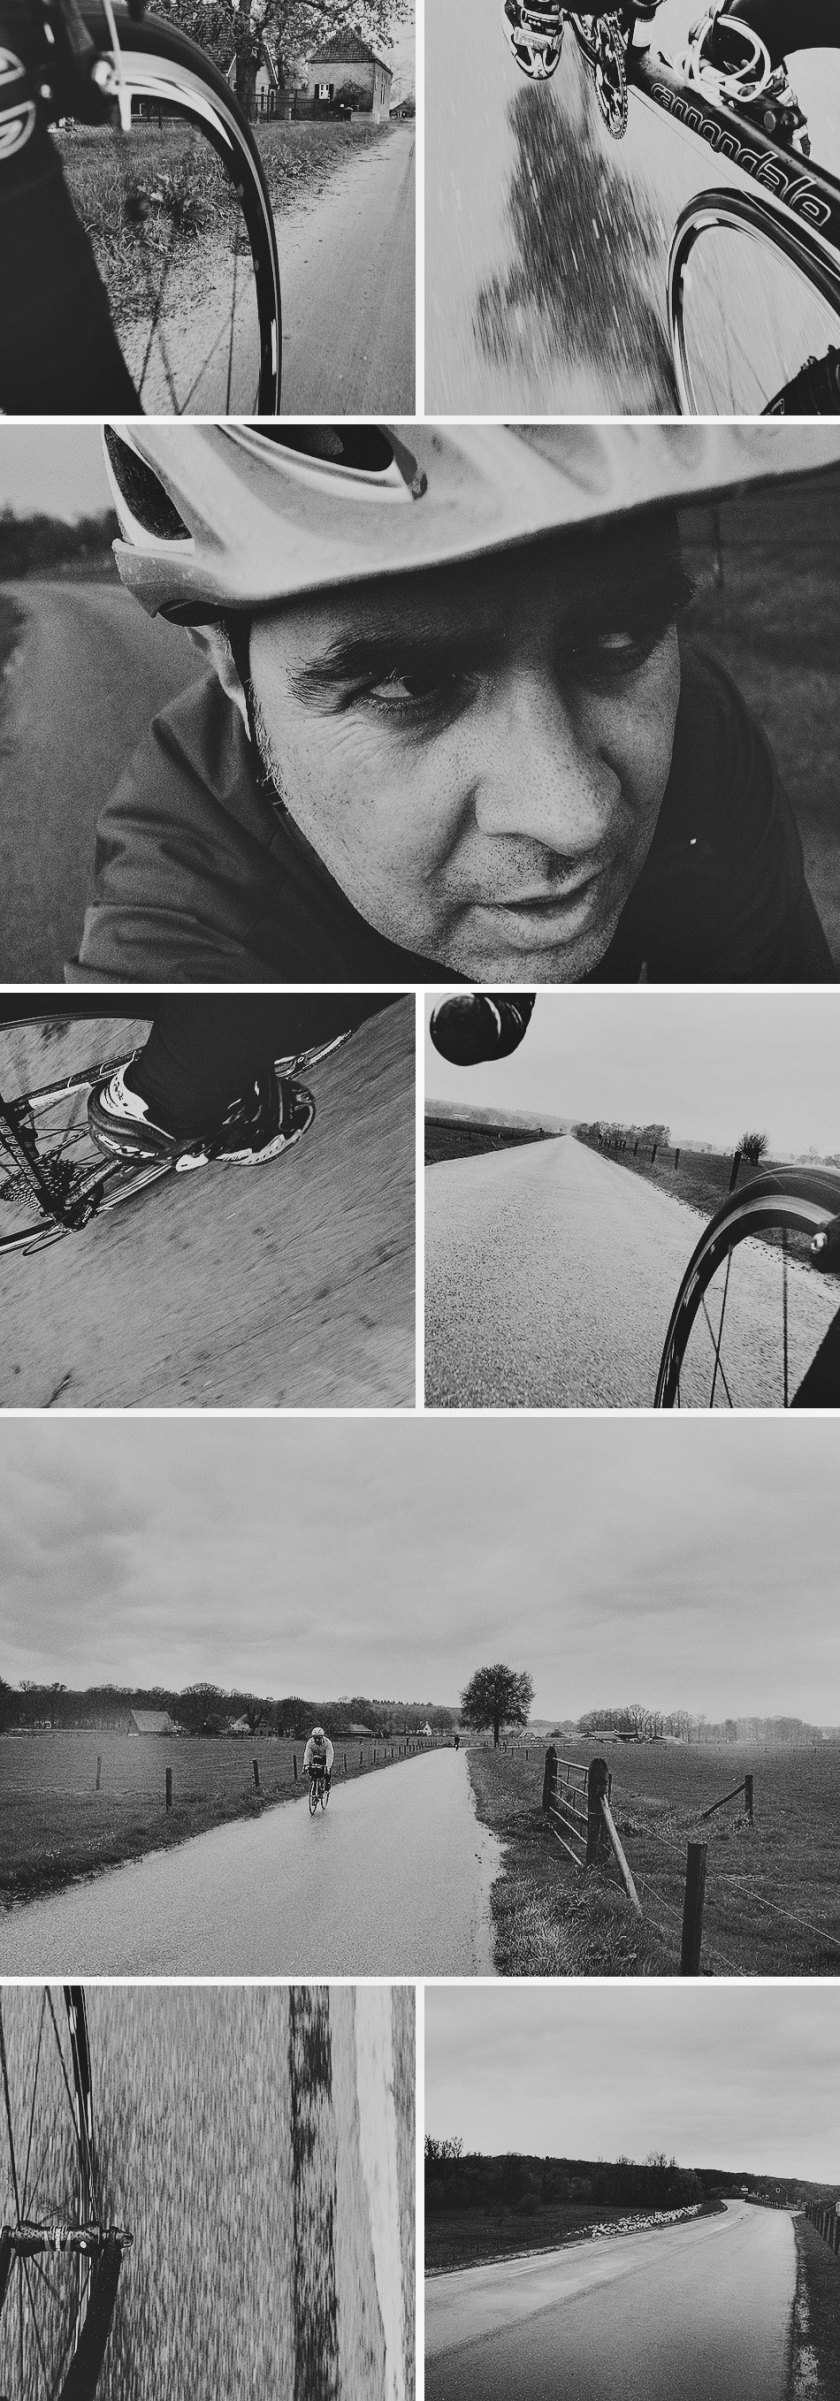 images, photographs, image, photograph, photography, wouter, brandsma, wouter brandsma, cycling, biking, riding, ride, tour, black and white, cyclista, passion, pain, exhaustion, rain, ricoh, ricoh grd, ricoh gr digital, ricoh grd3, ricoh gr digital 3, bicycle, netherlands, europe